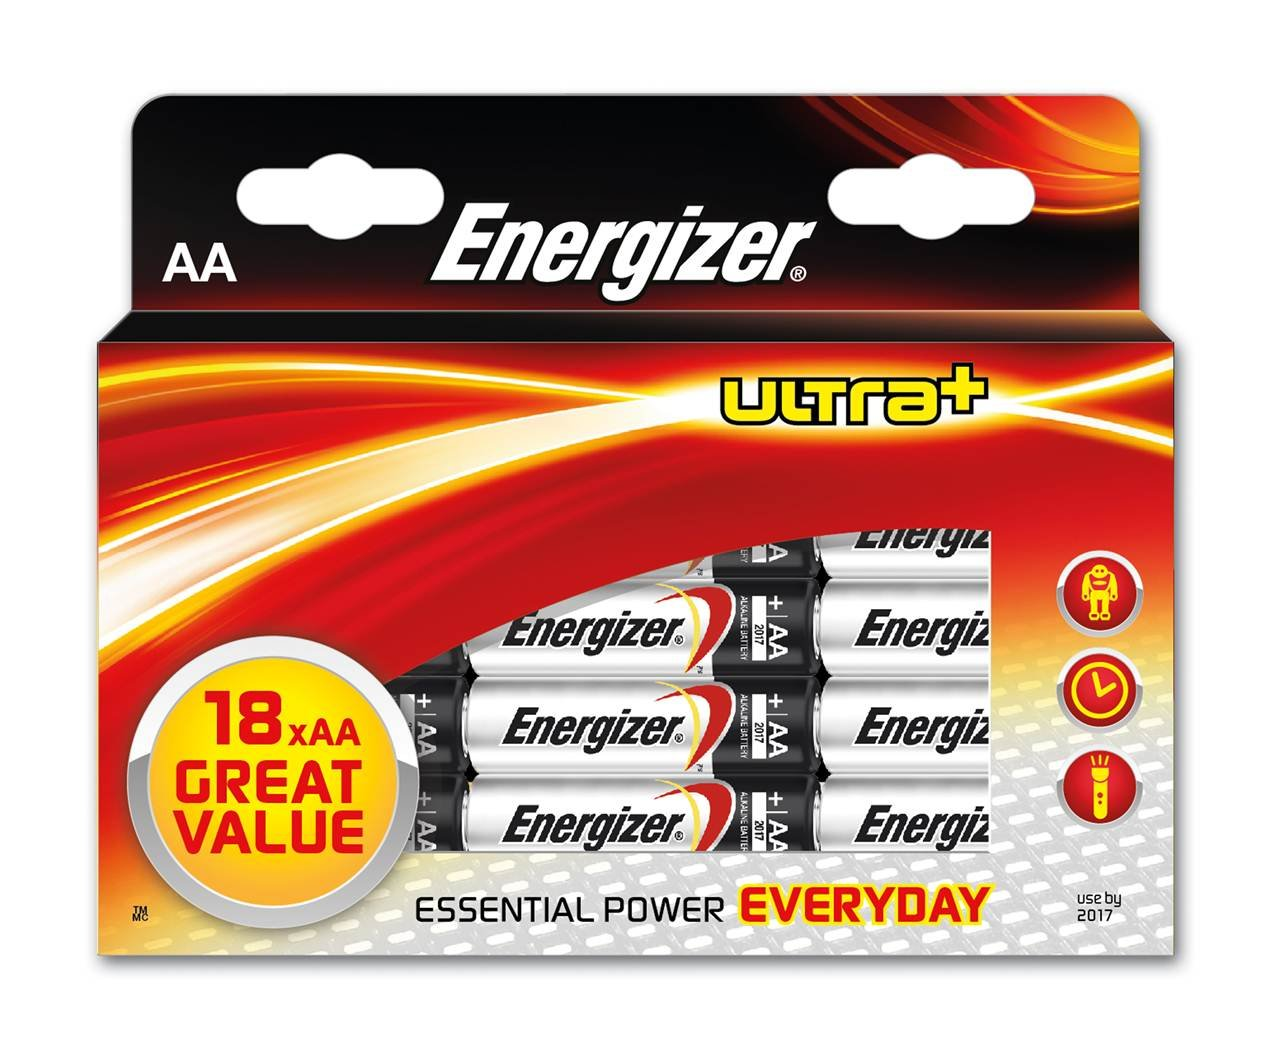 Energizer Ultra Plus Aa Batteries Pack Of 18 Health Arta Cutaway Diagram Show A Typical Alkaline Cell Or Battery With Personal Care